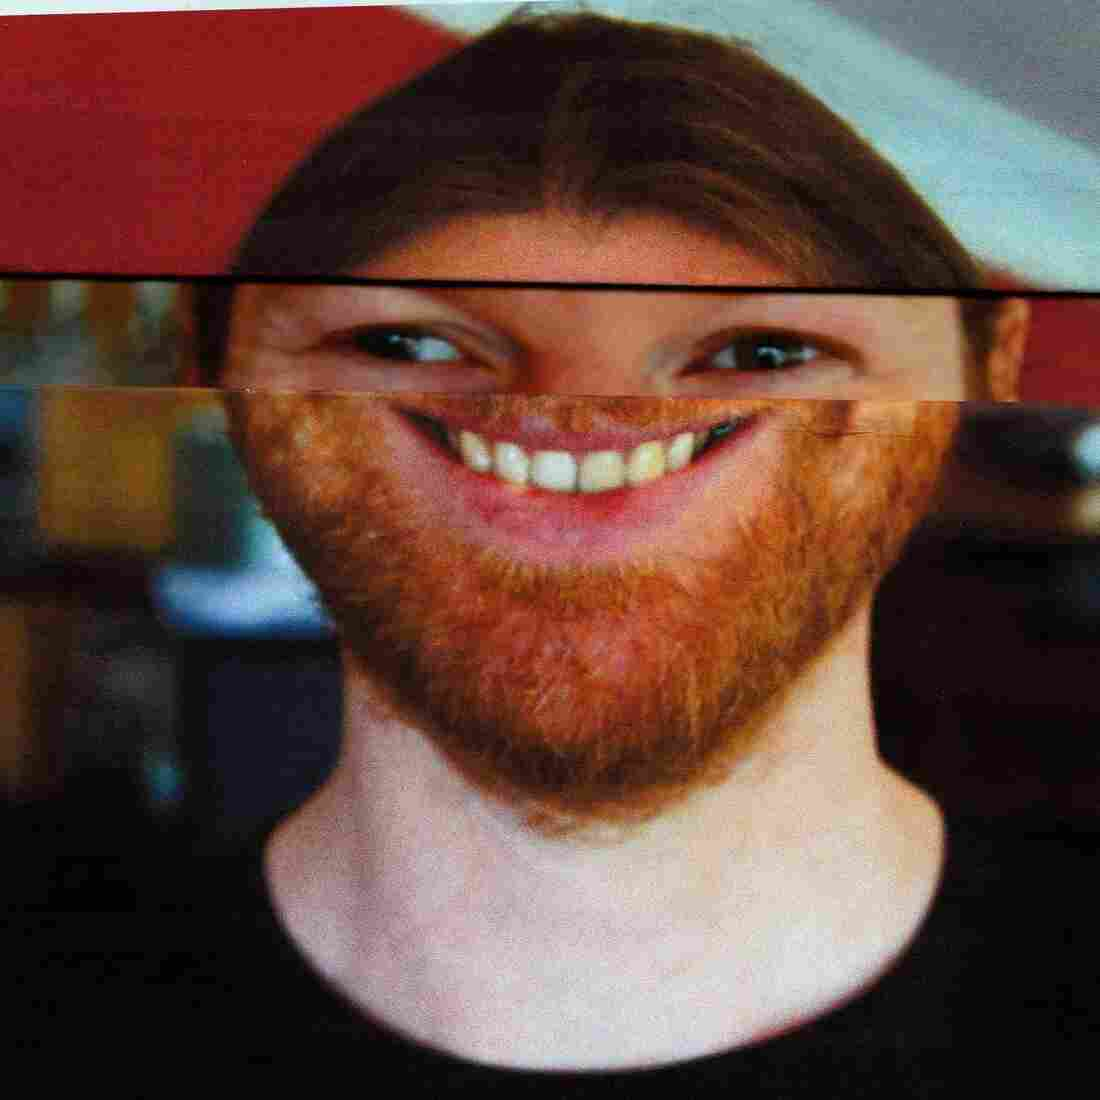 The electronic musician Richard D. James hasn't released a new album of material under his most famous moniker, Aphex Twin, in nearly 13 years.